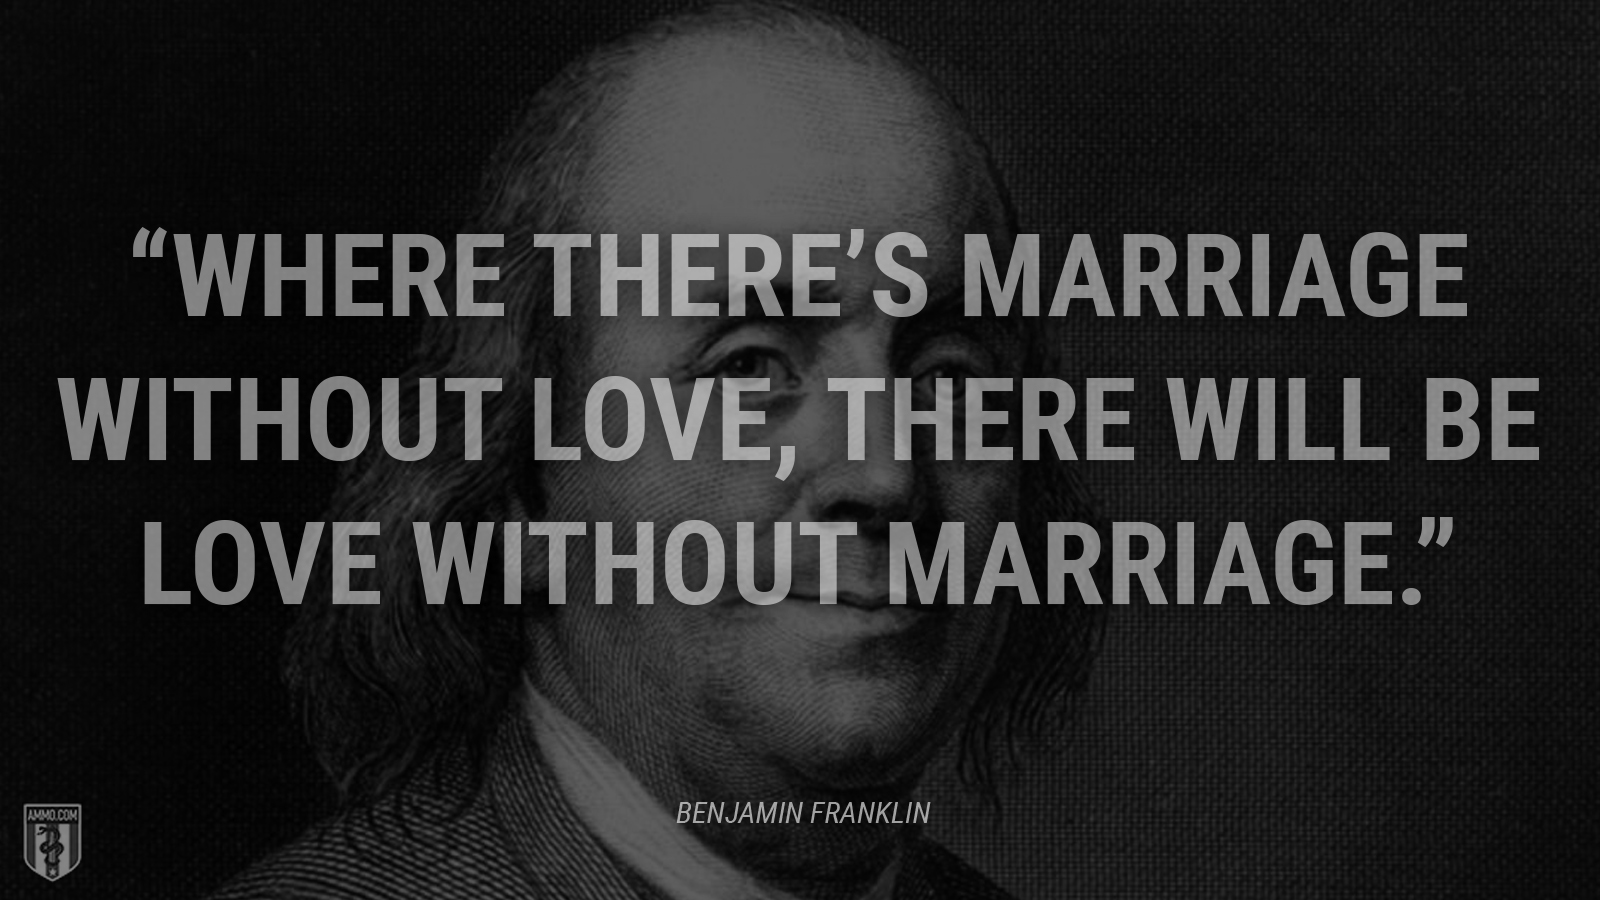 """Where there's marriage without love, there will be love without marriage."" - Ben Franklin"